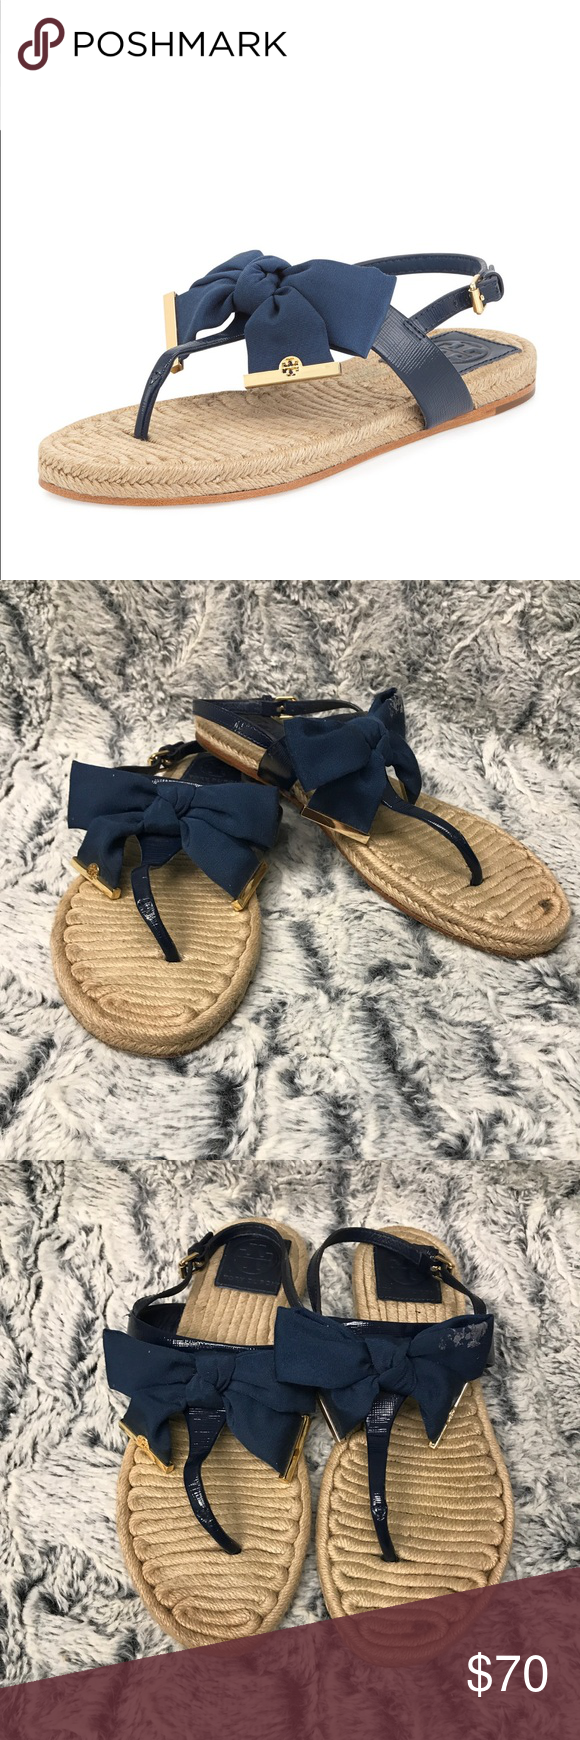 98605917e35 Tory Burch Penny Flat Bow Espadrille Sandals